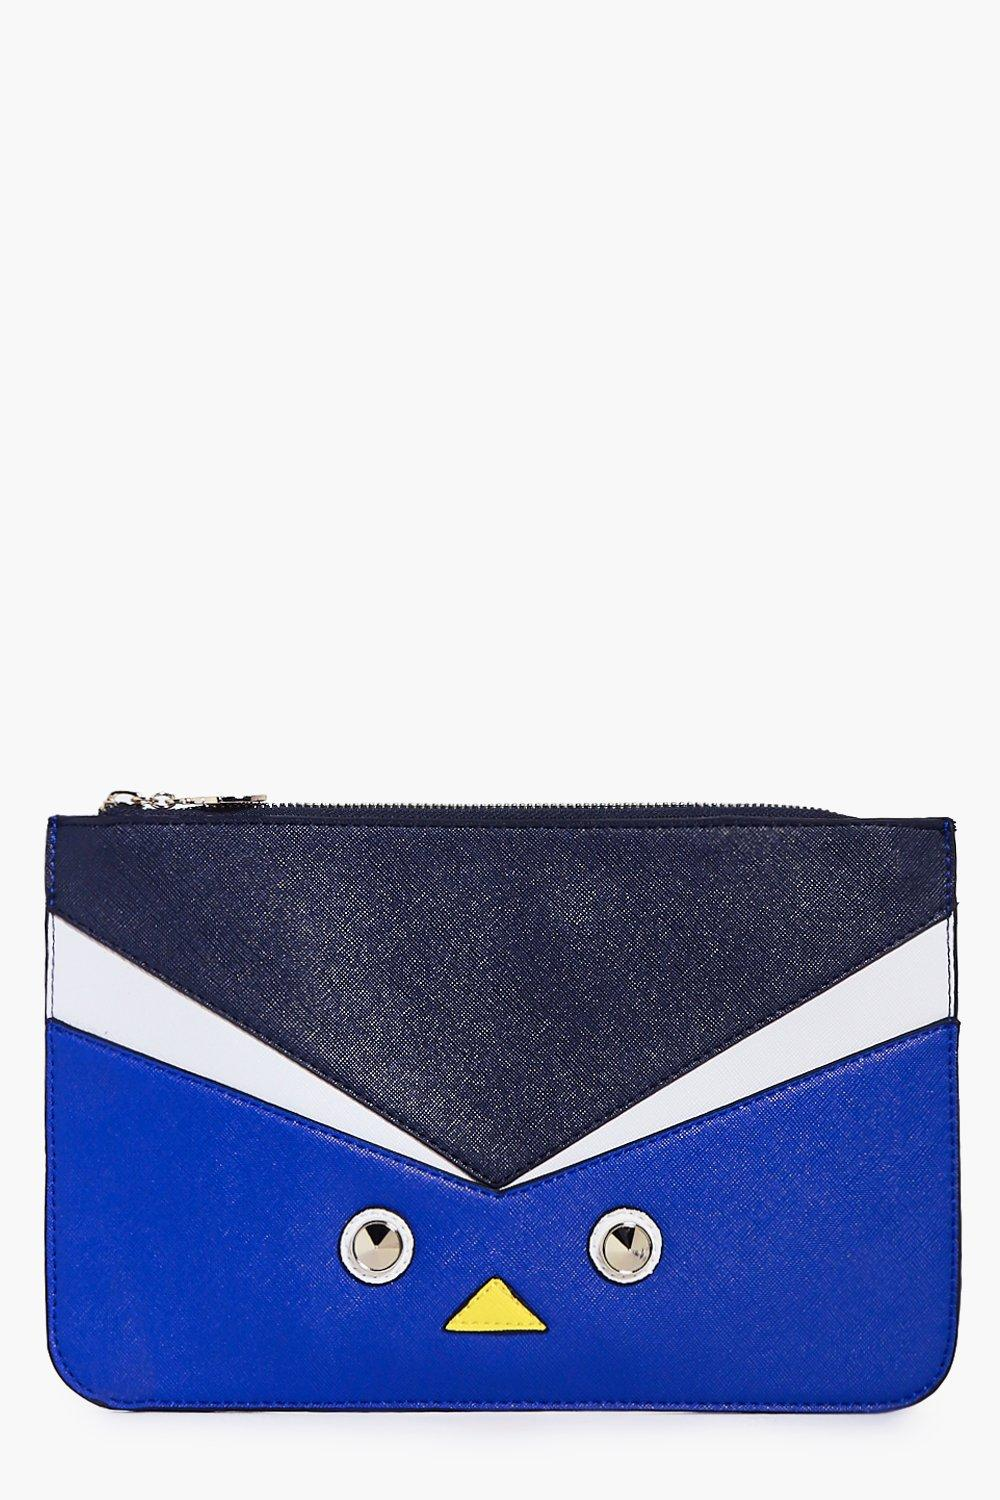 Claire Colour Block Stud Detail Zip Top Clutch